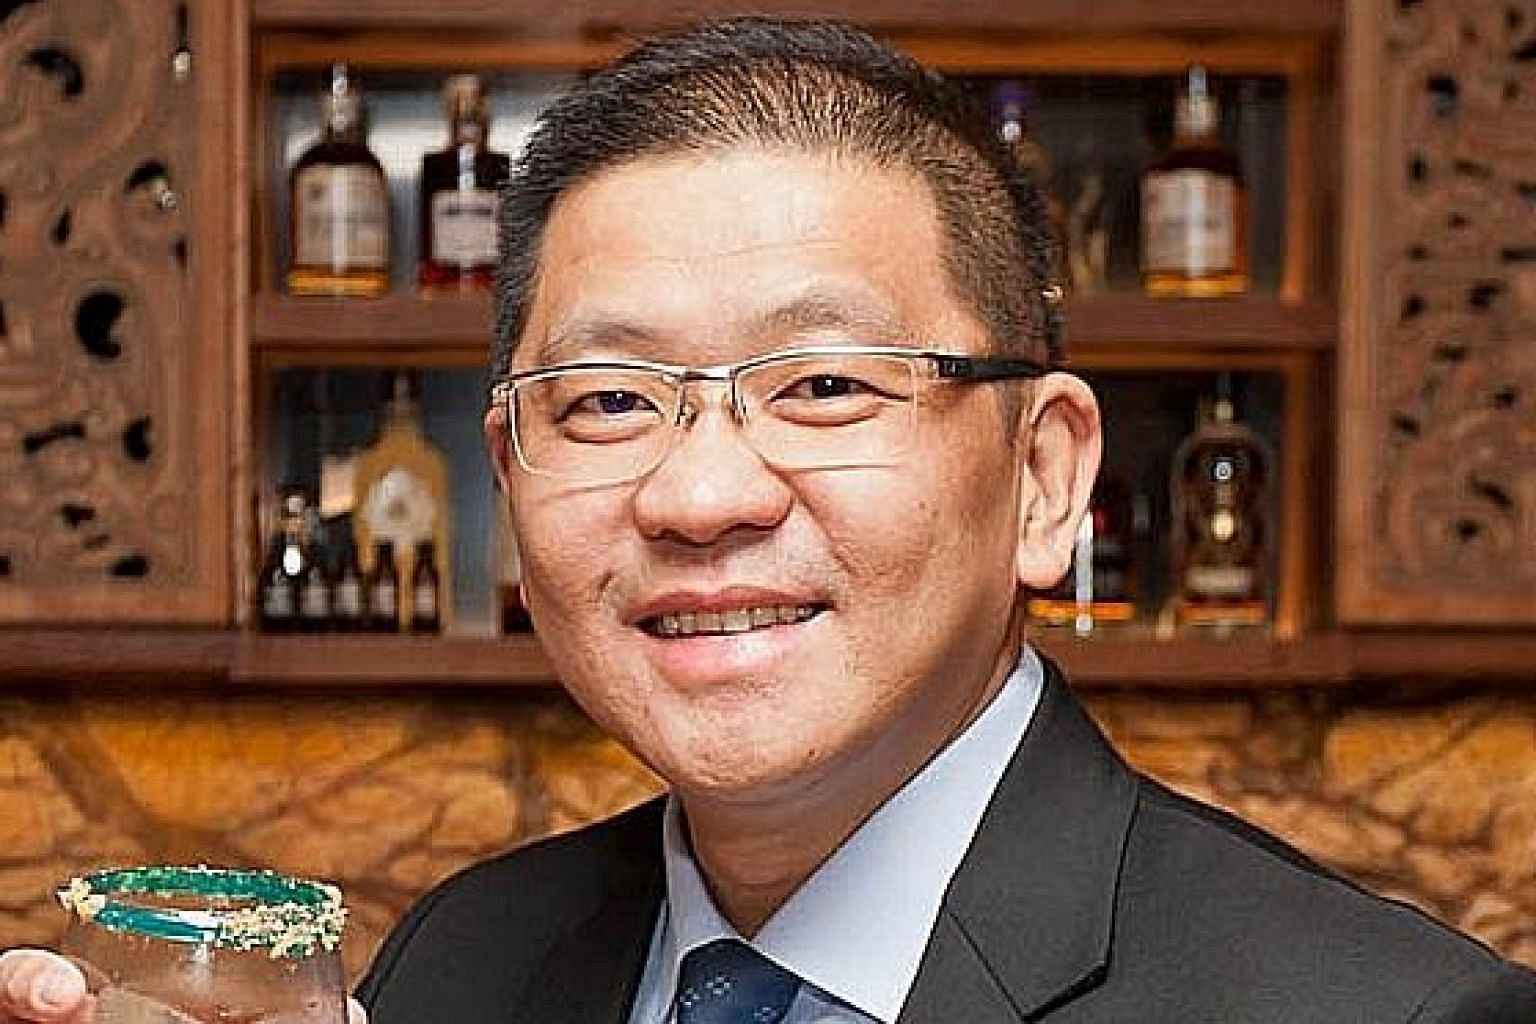 BreadTalk CEO Henry Chu has over 20 years of experience in retail and food and beverage in Singapore and the region.